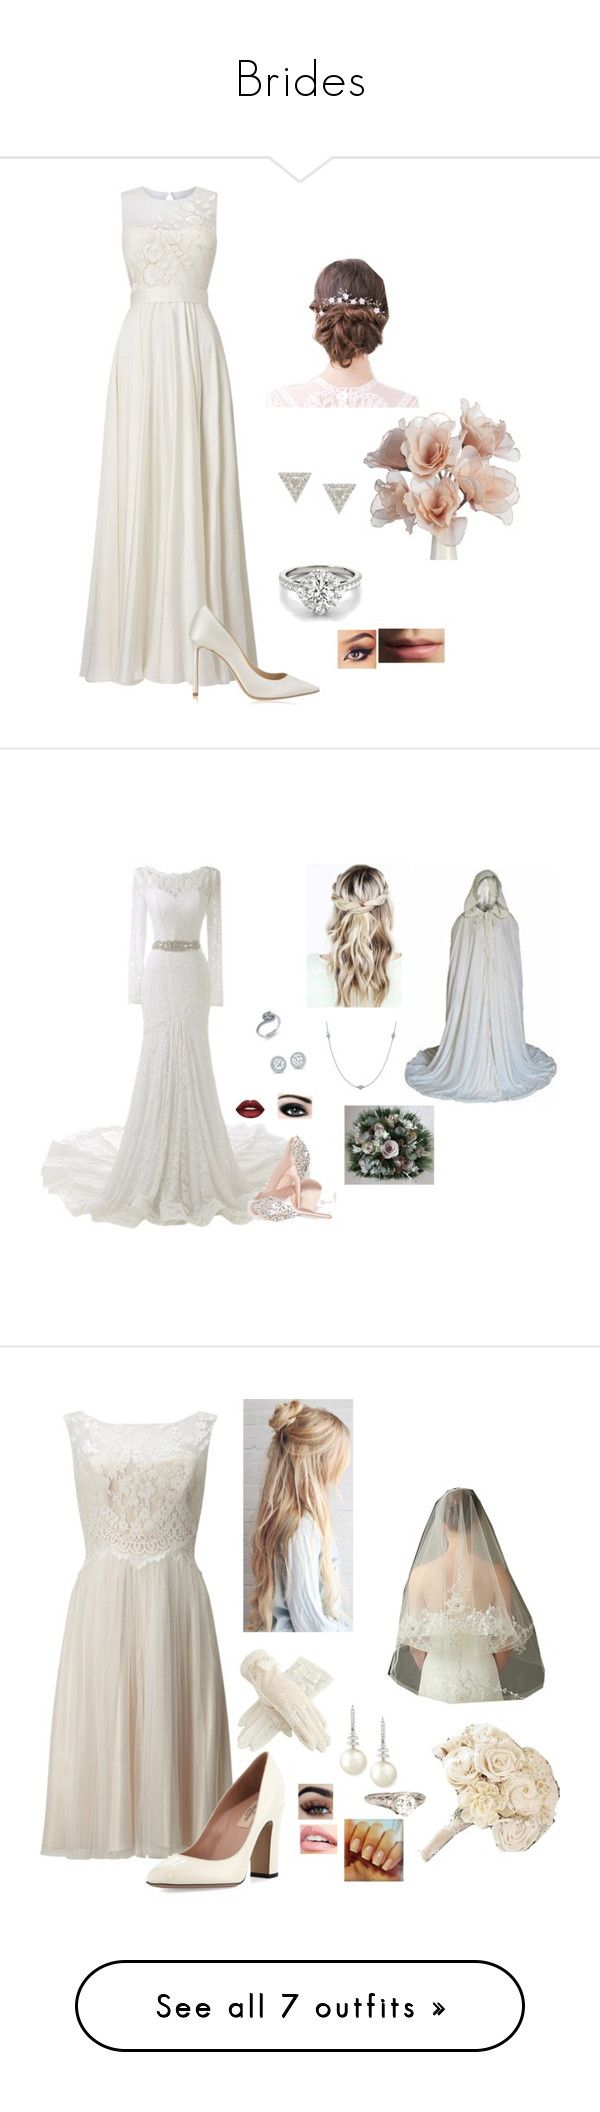 """""""Brides"""" by terra-wendy ❤ liked on Polyvore featuring Phase Eight, Jimmy Choo, Burberry, Lizzie Mandler, Lime Crime, Max Factor, Elsa Peretti, Valentino, Sola and Belpearl"""